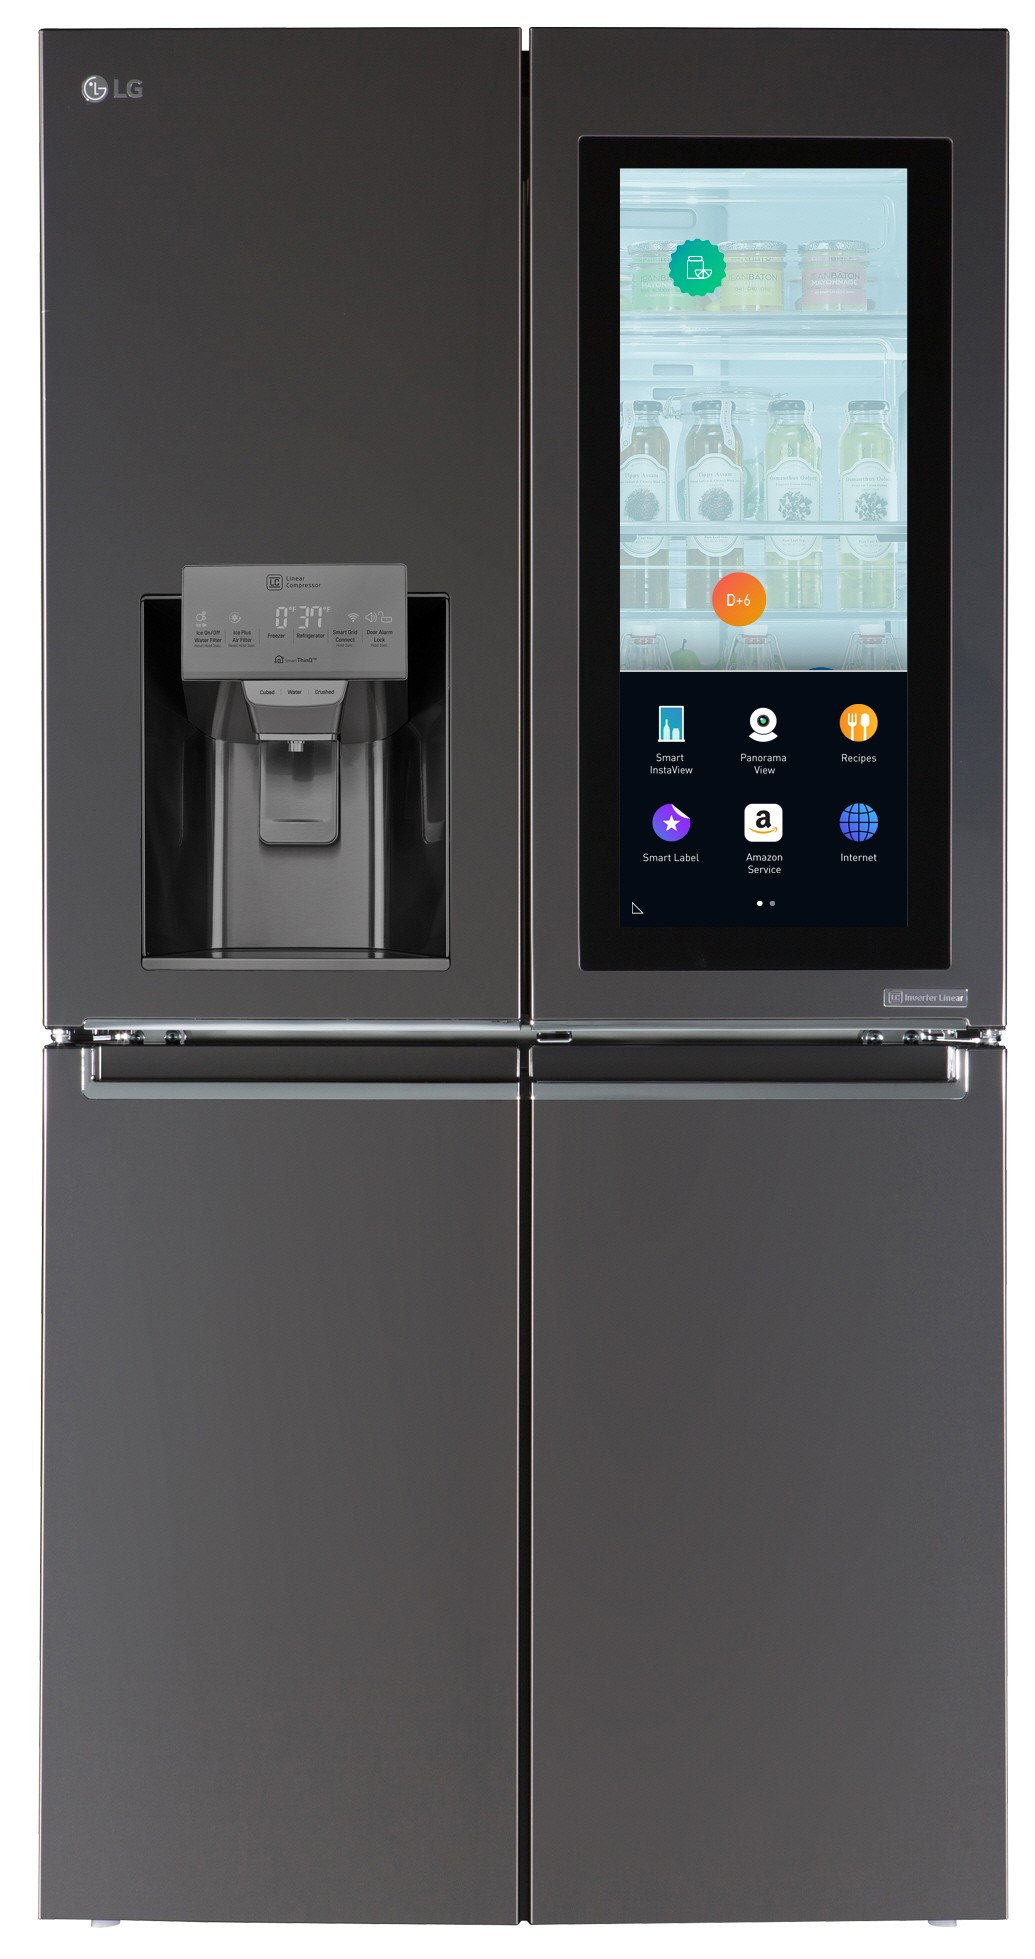 Another view of LG InstaView™ refrigerator with its touch panel activated